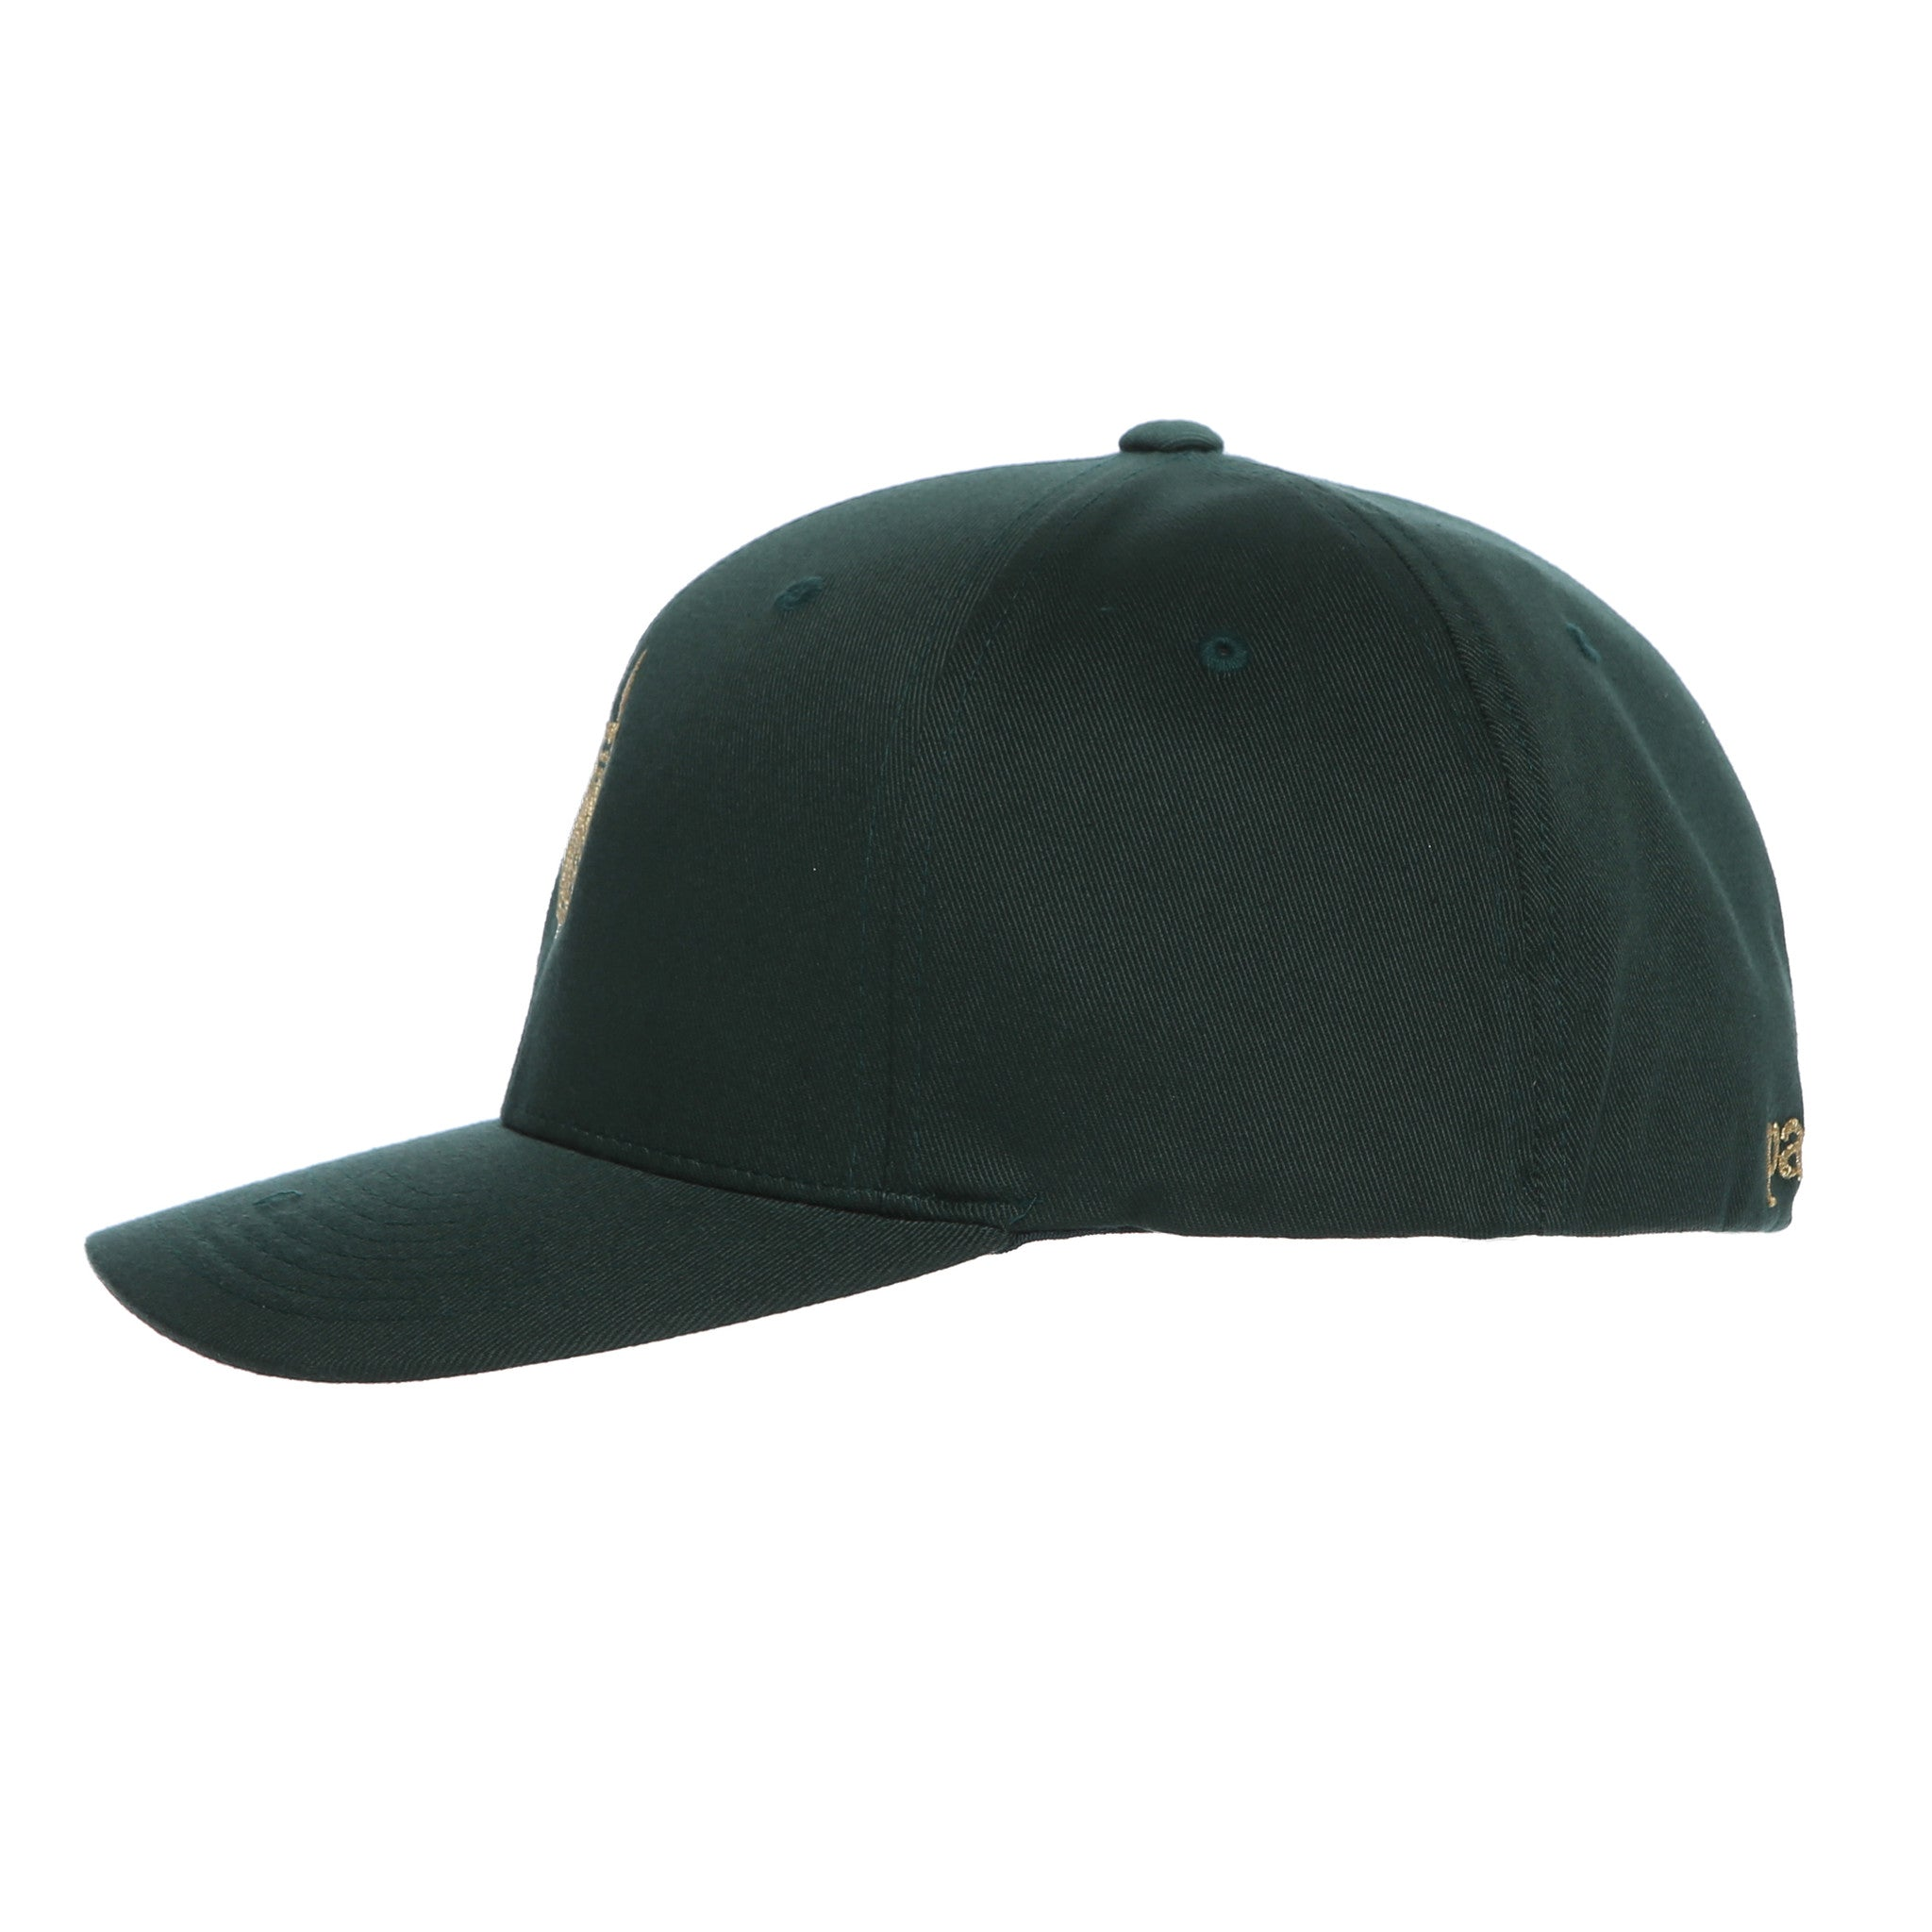 V+B LTD ORIGINAL GREEN FLEX FIT HAT